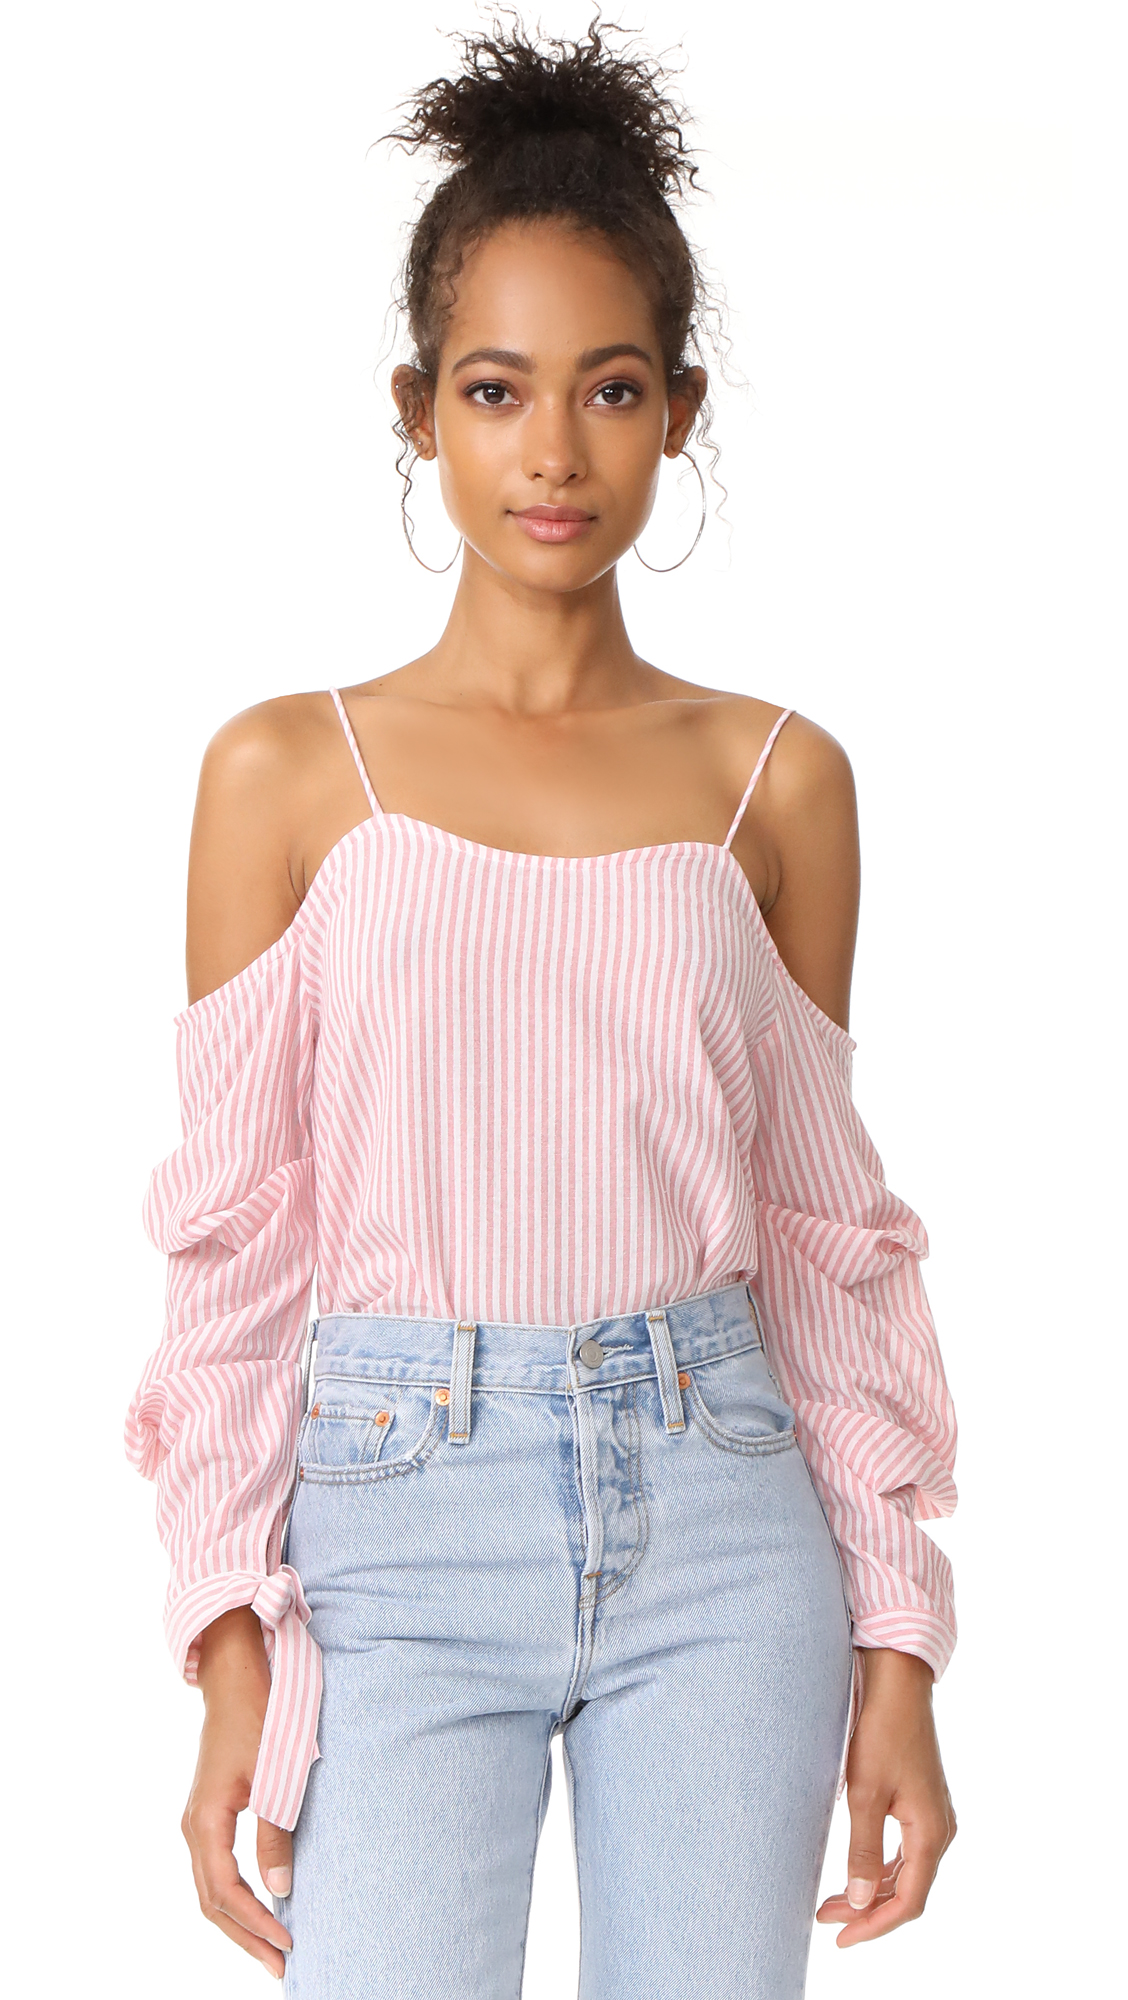 After Market Ruffle Sleeve Blouse - Peach White